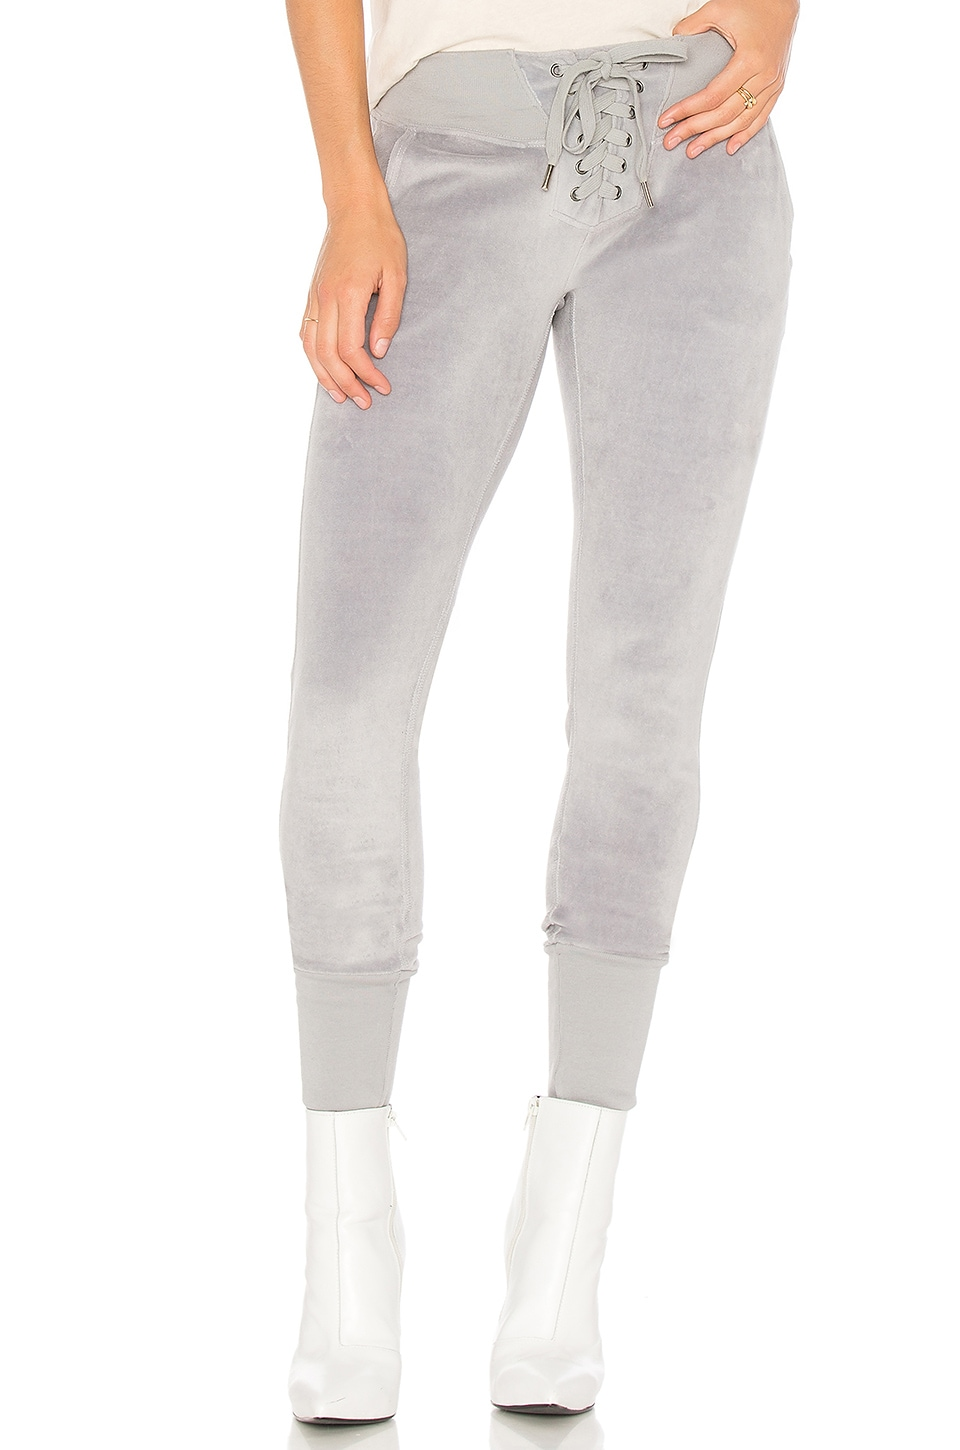 Maddox Lace Up Sweatpants